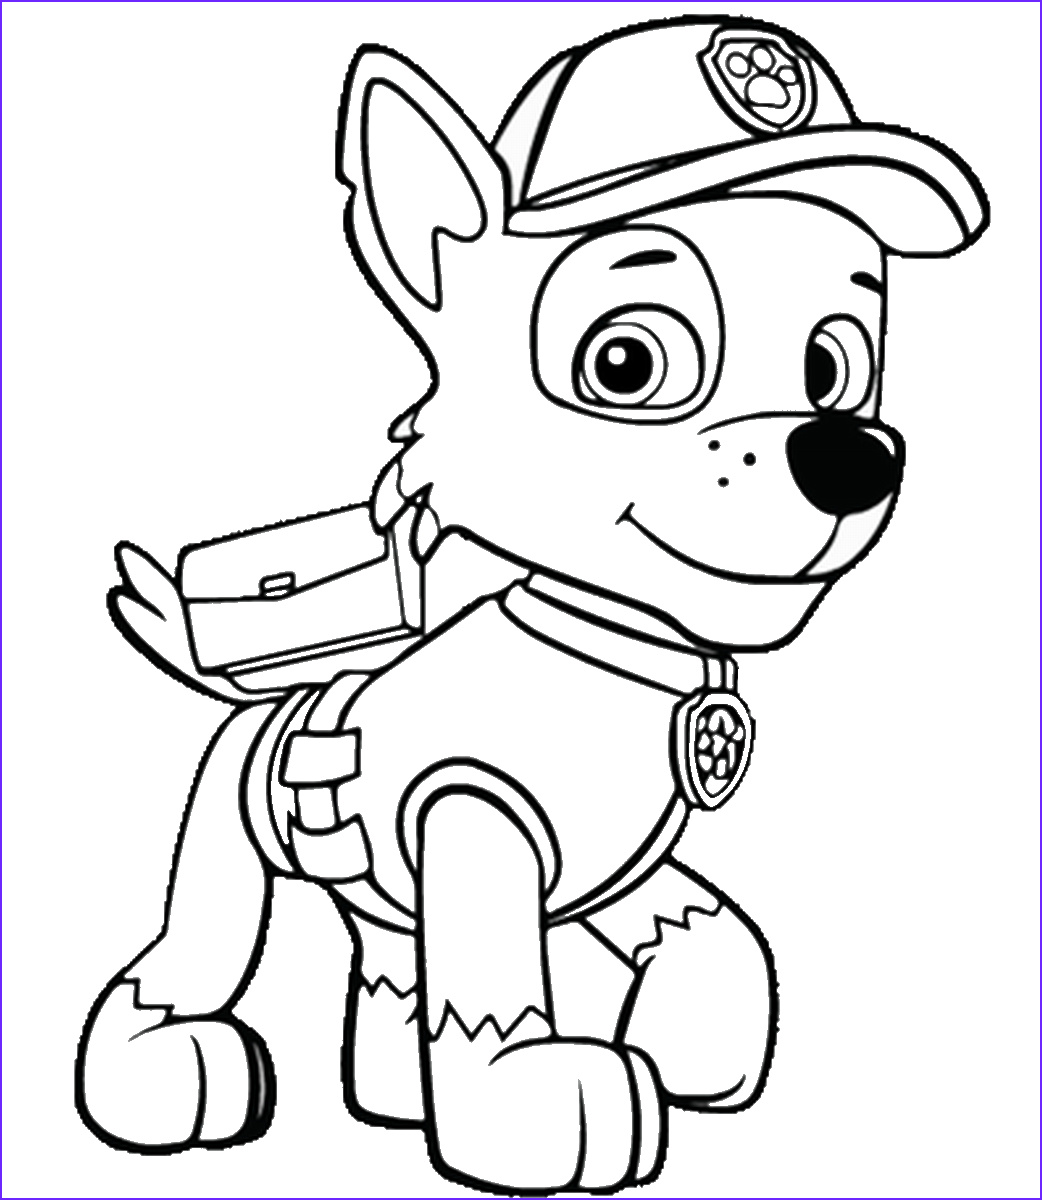 Paw Patrol Printable Coloring Page Elegant Photos Paw Patrol Free Colouring Pages